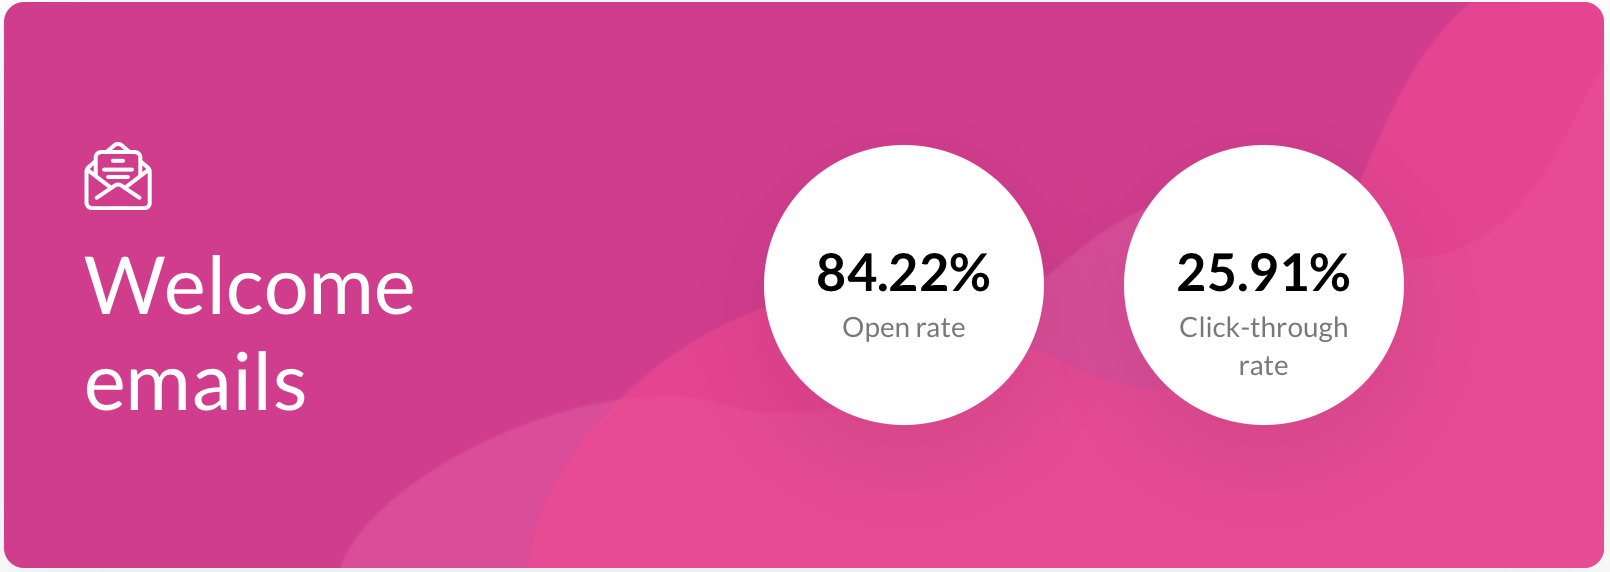 welcome emails open rate and click through rate getresponse.